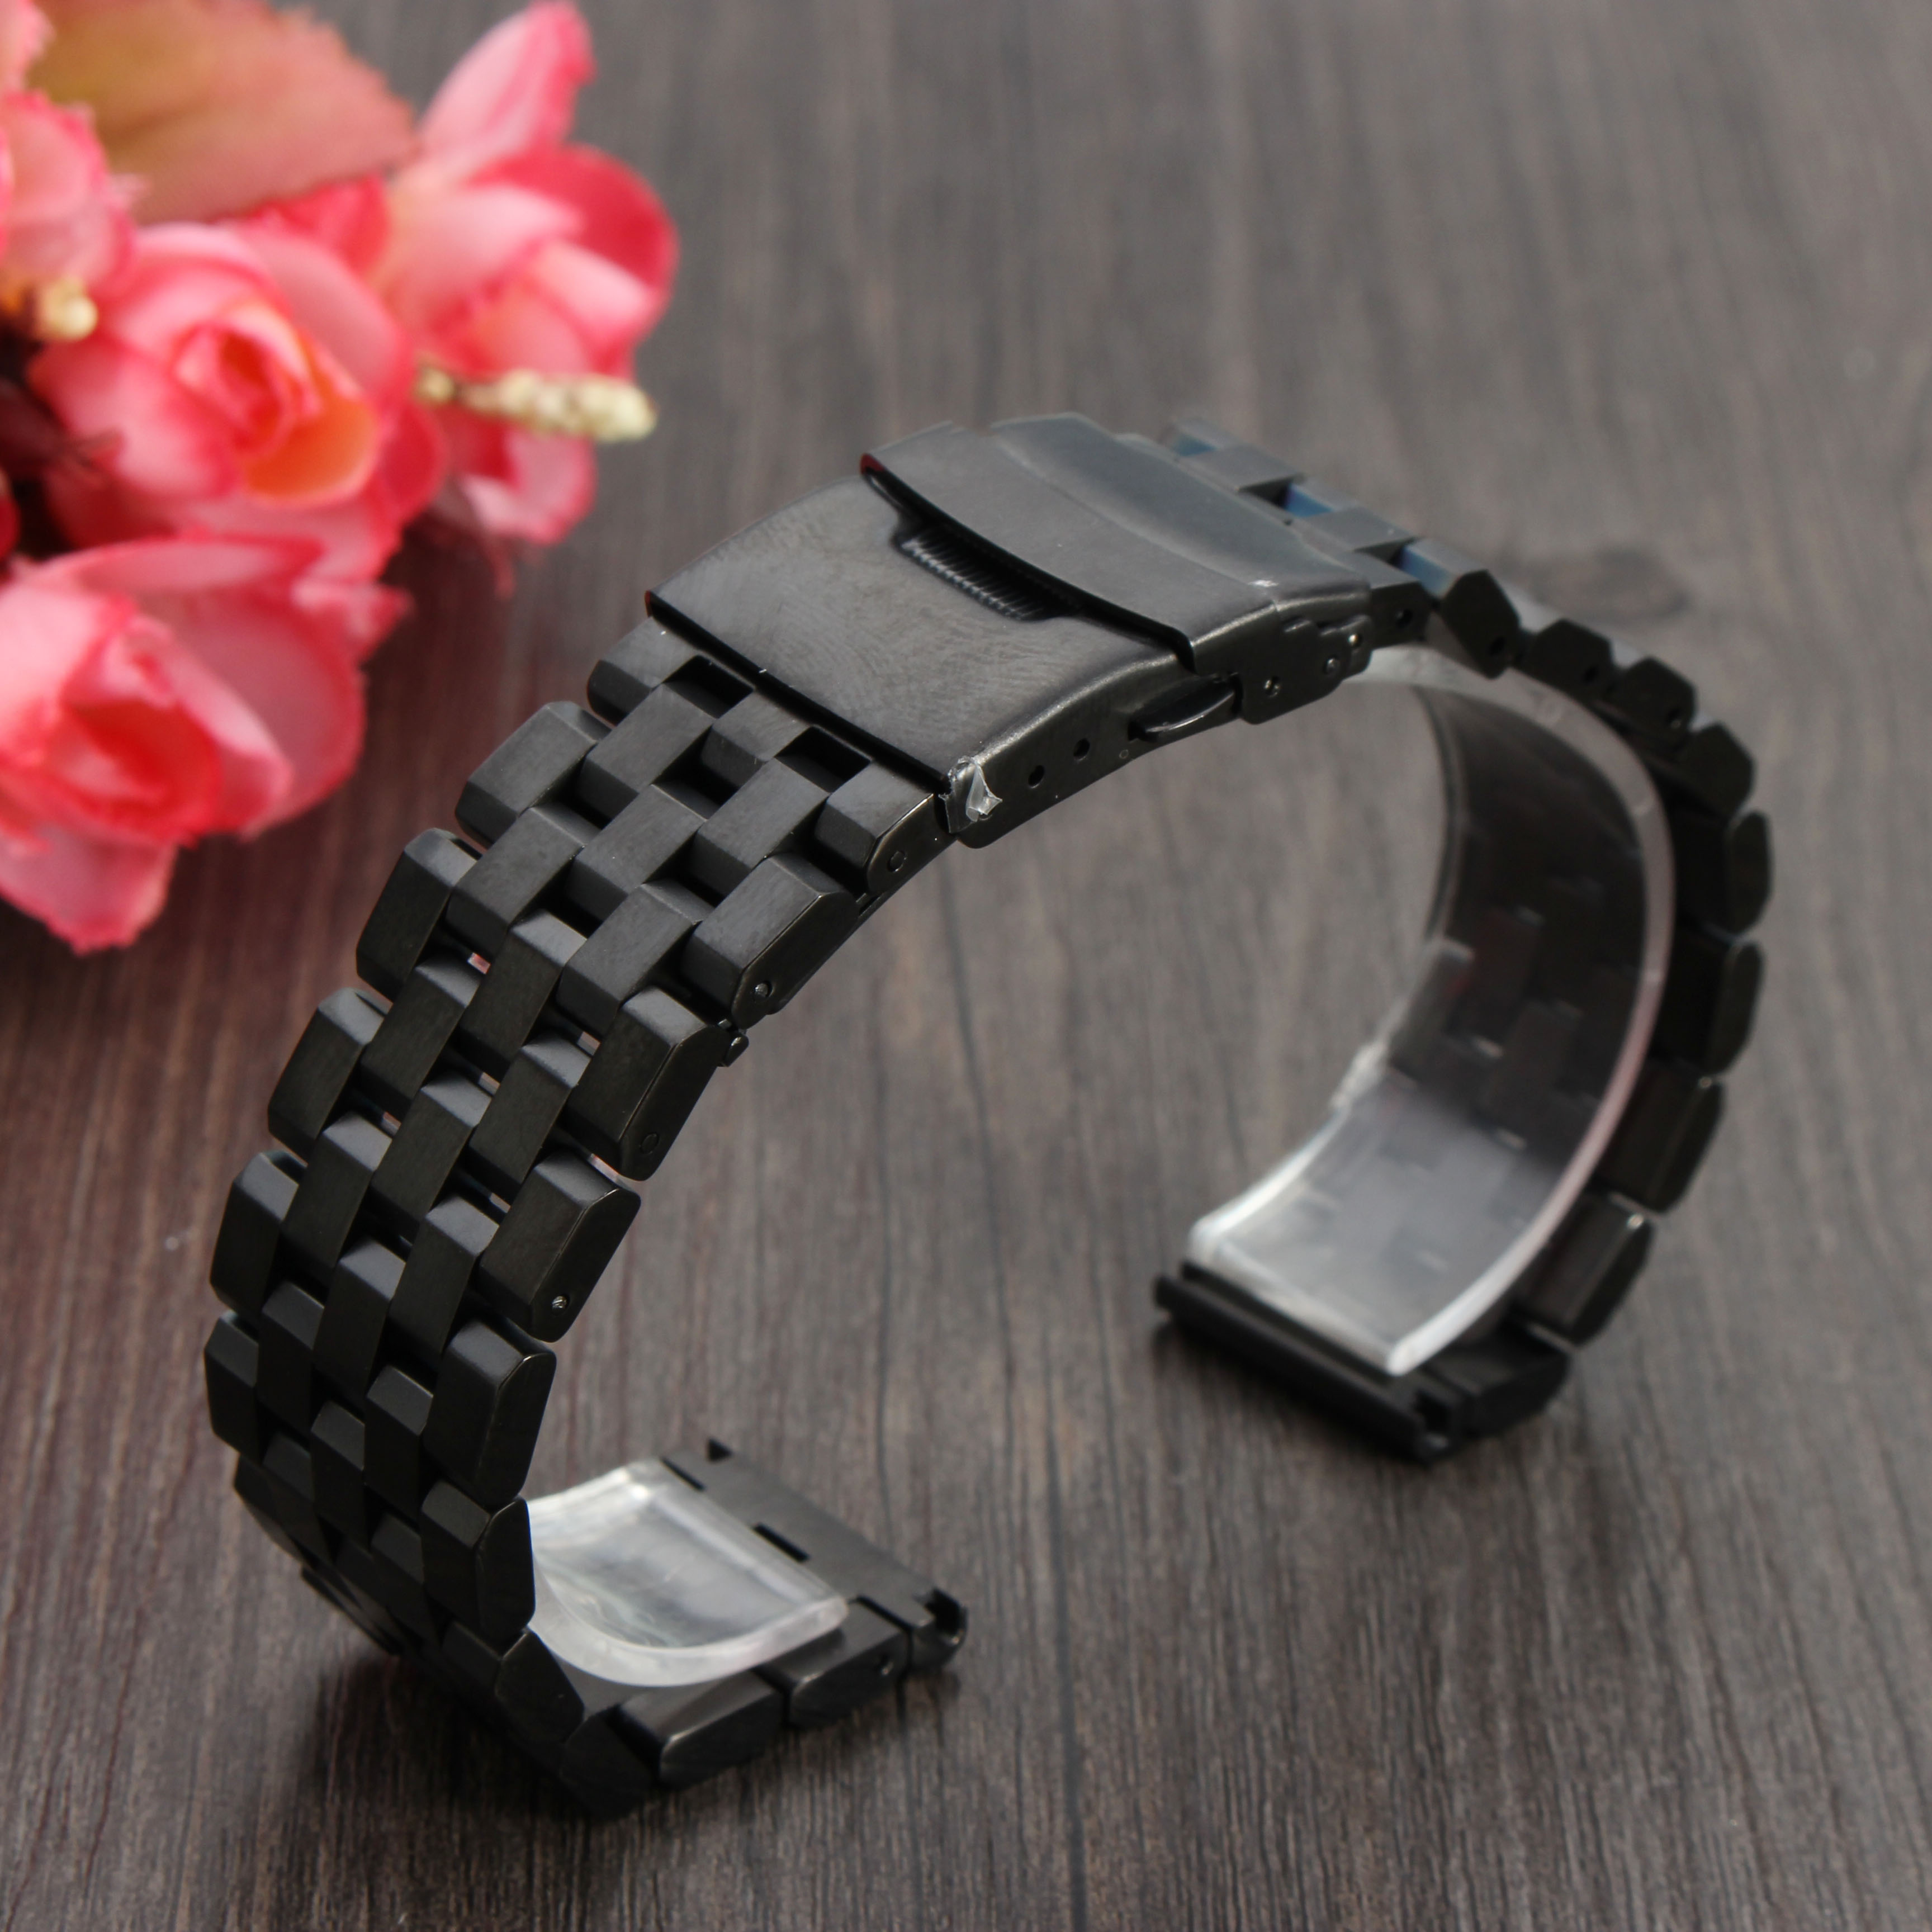 20/22/24mm Stainless Steel Strap Straight End Metal Bracelet Wrist Watch Band